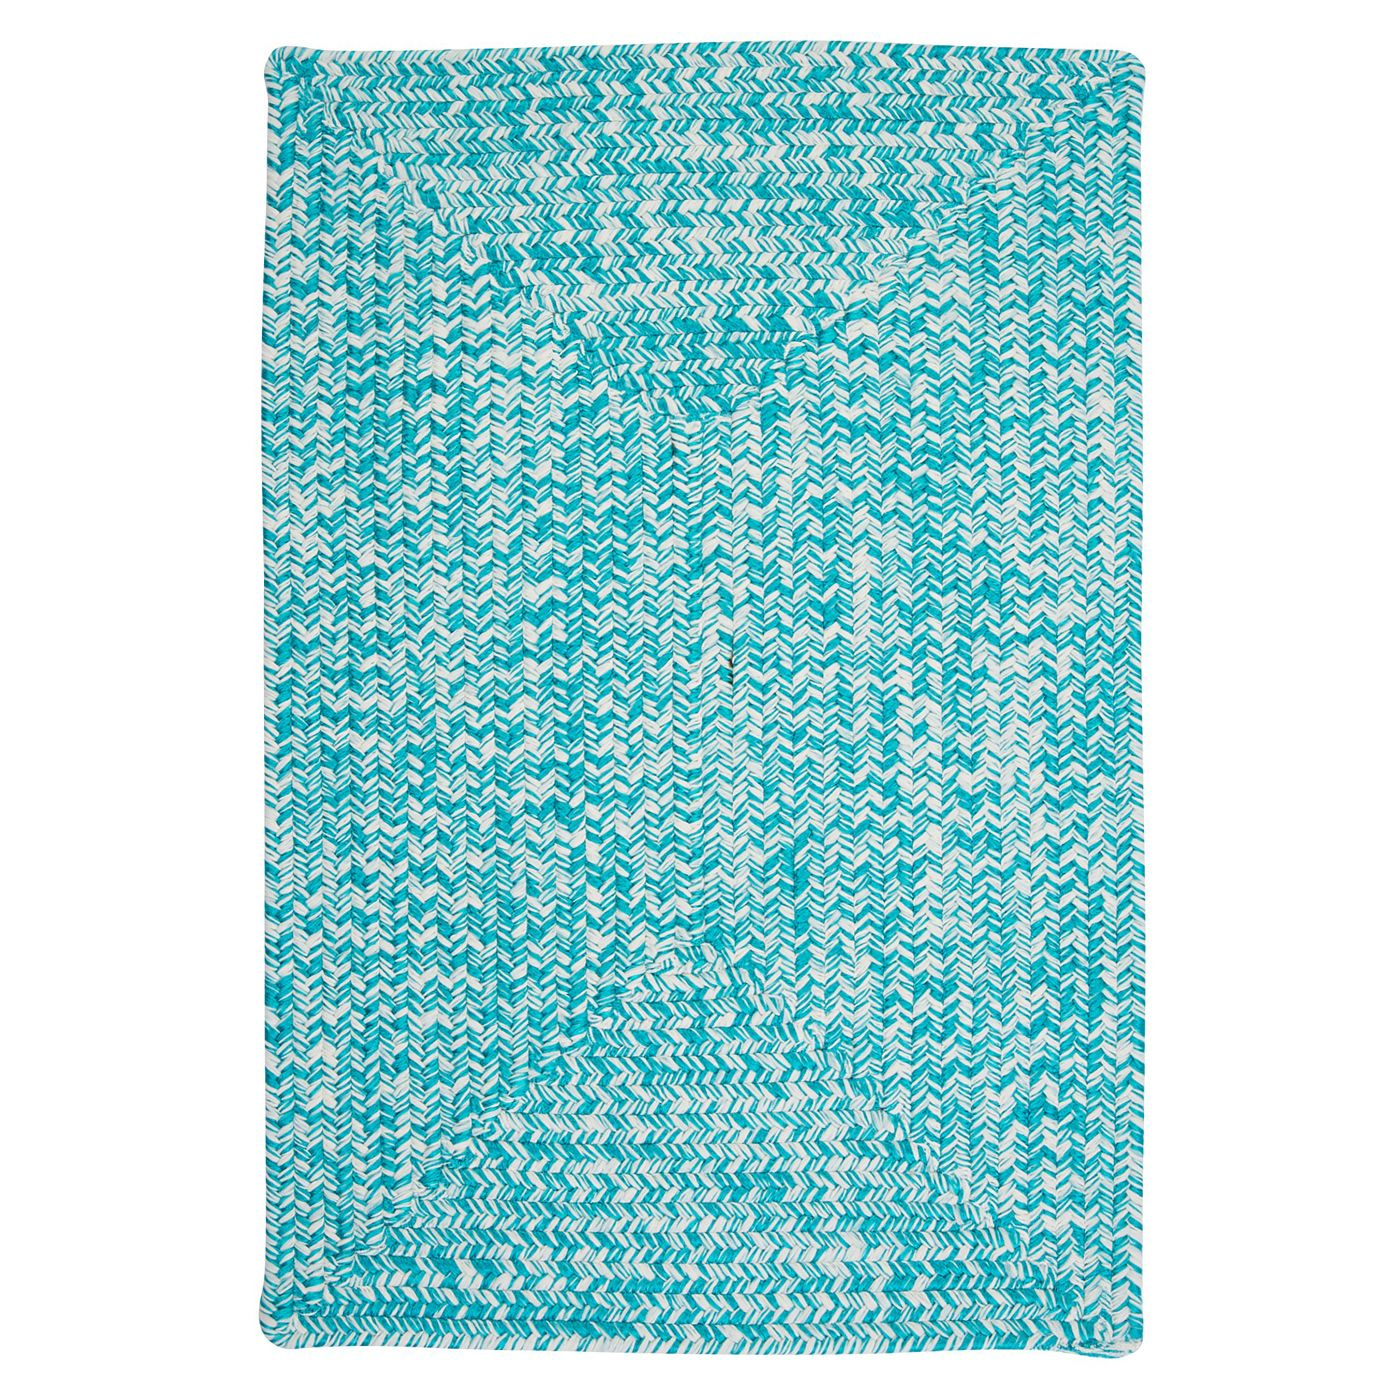 Colonial Mills Ca19r Catalina Area Rug Aquatic At Atg S Browse Our